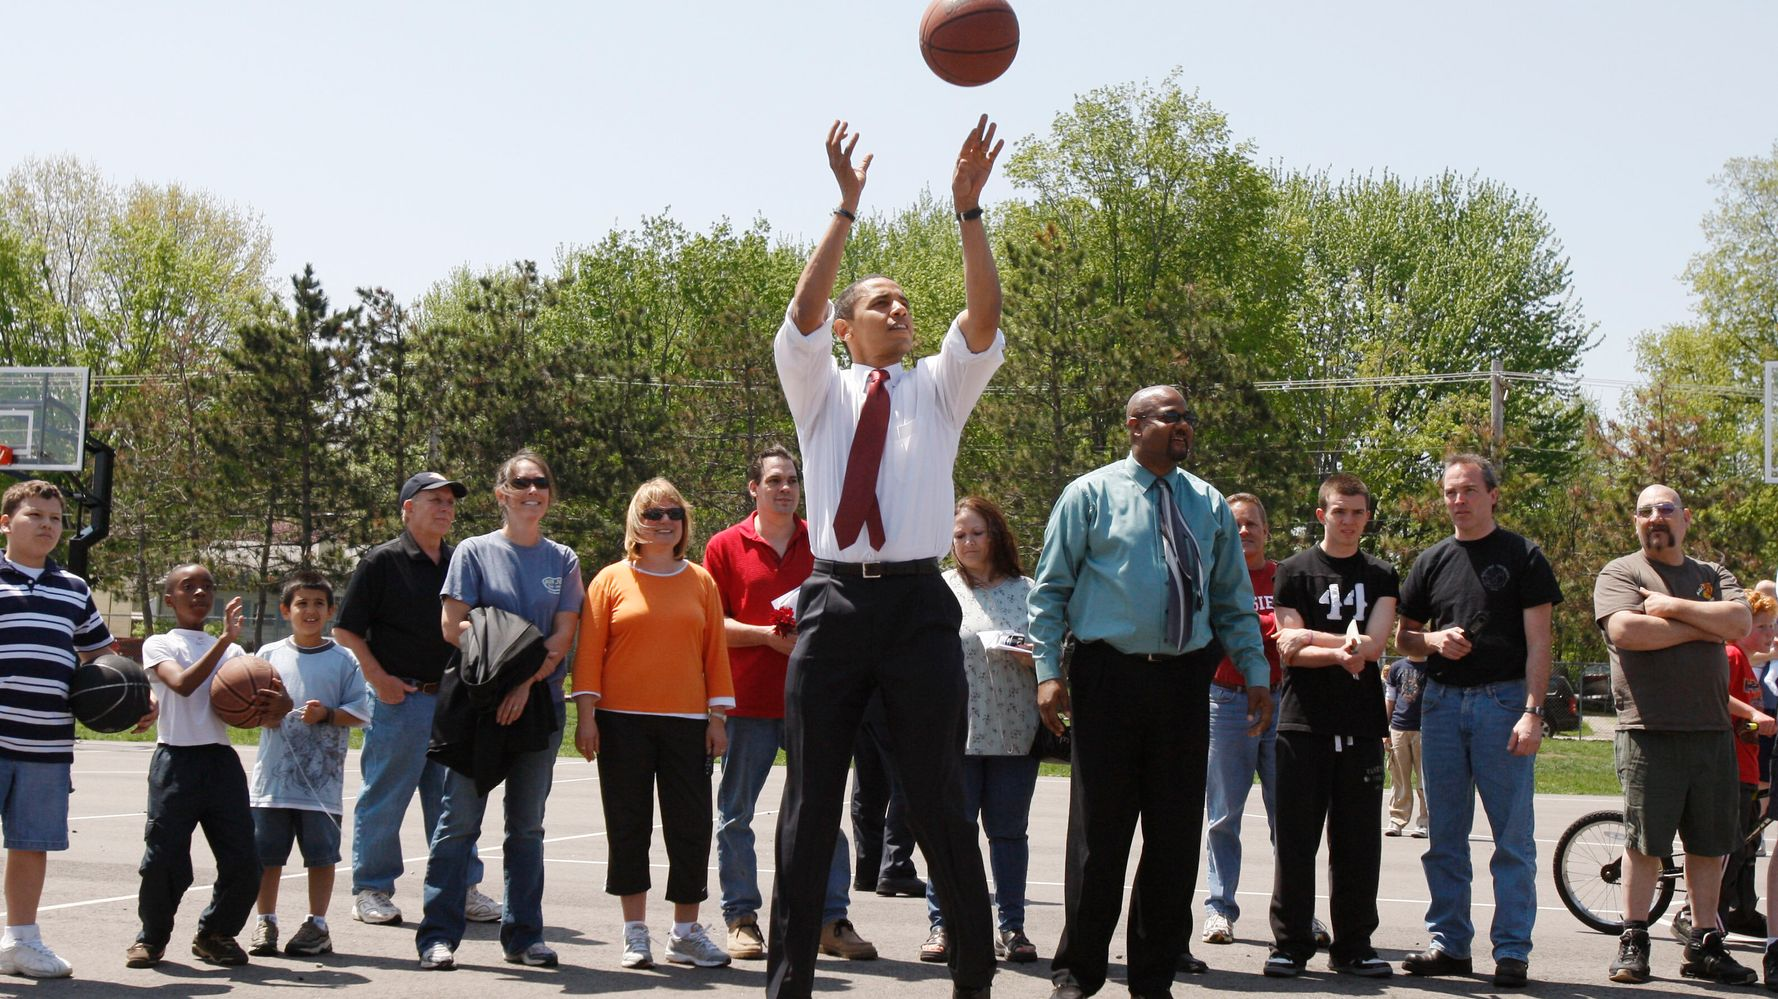 'All Cash': LeBron James Hails Barack Obama's Smooth 3-Pointer Before Michigan Rally